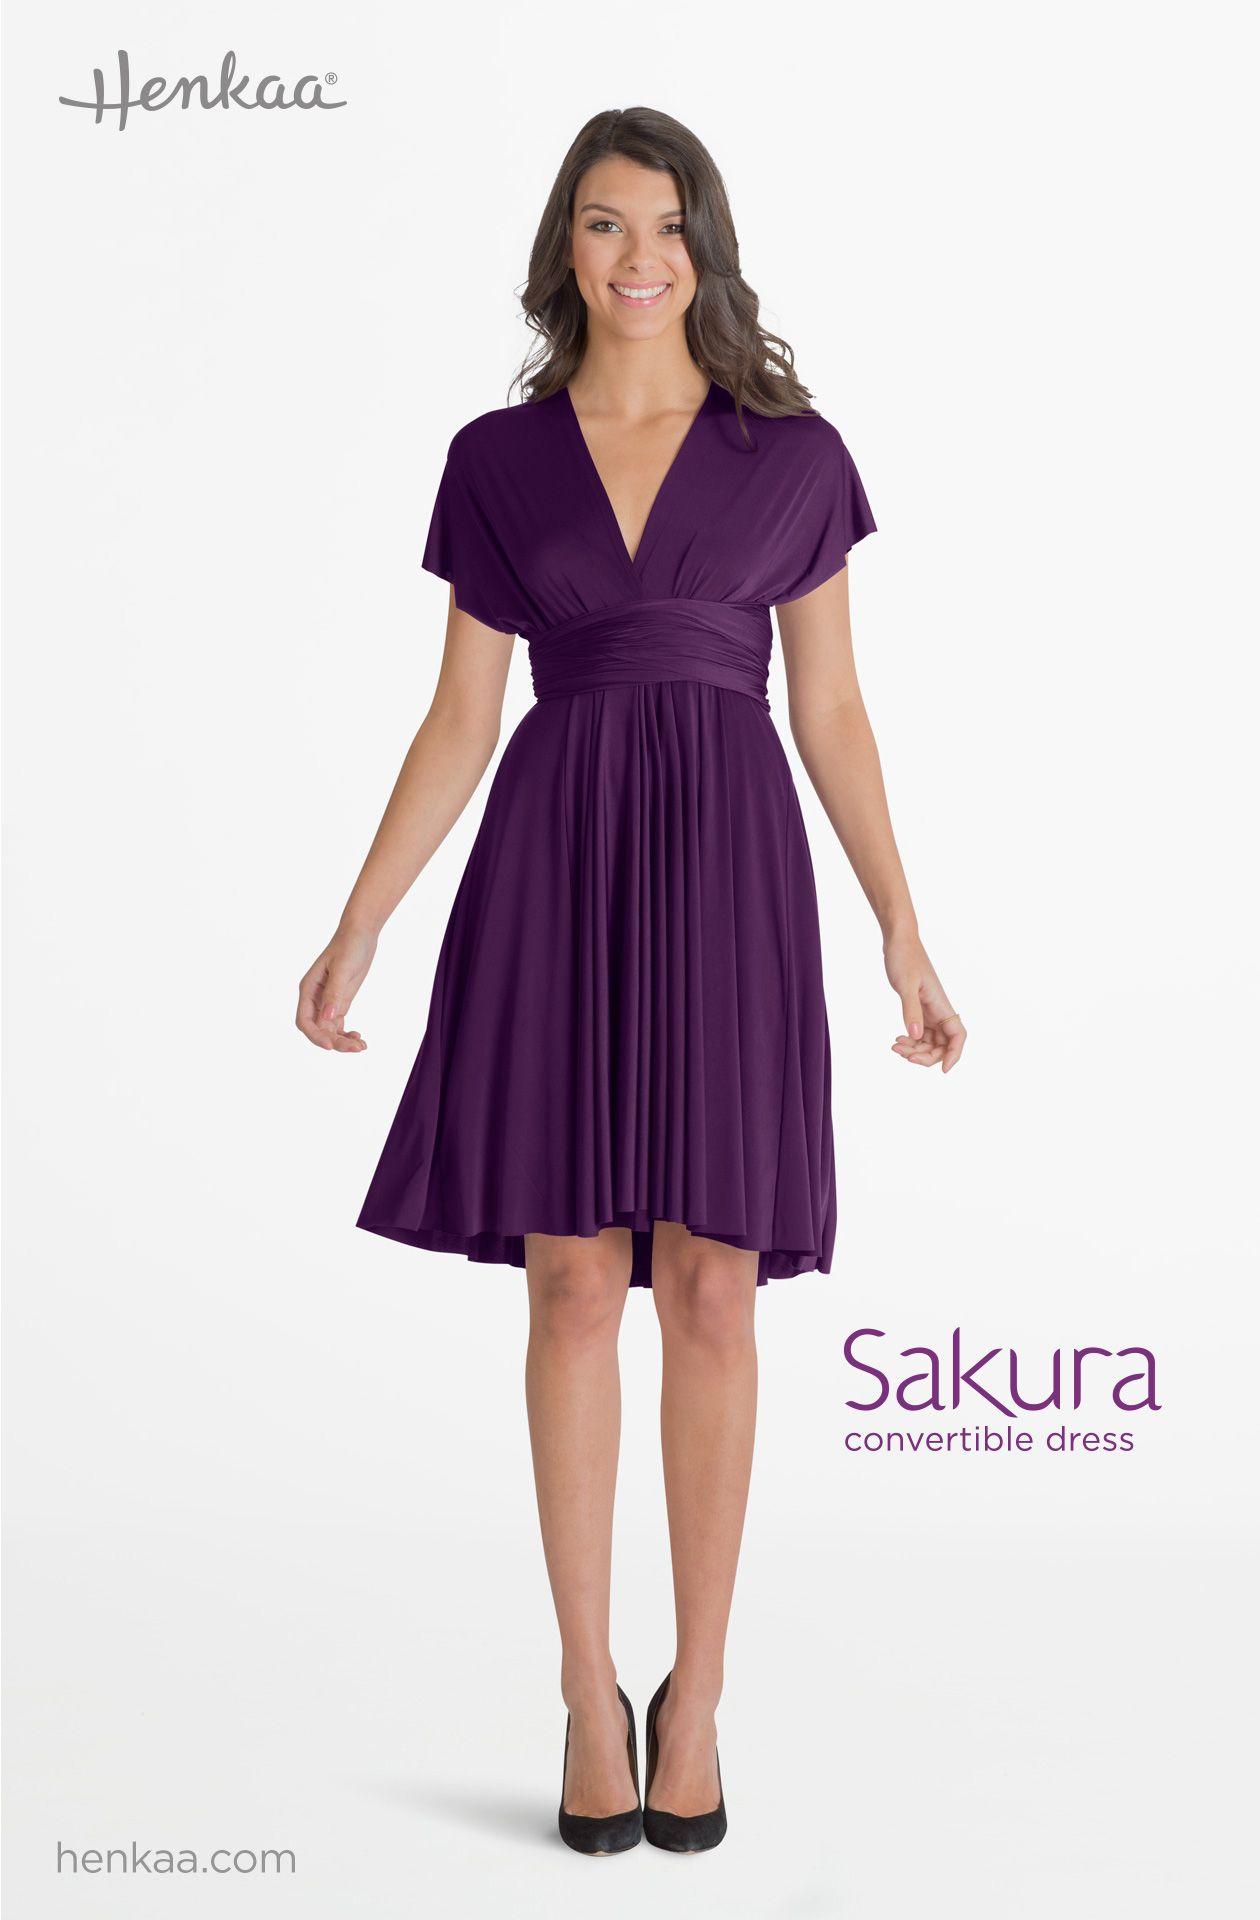 0702d13e891 Learn to Style the Sakura Midi Convertible Dress in the Victoria Style -  Portrait Sleeve